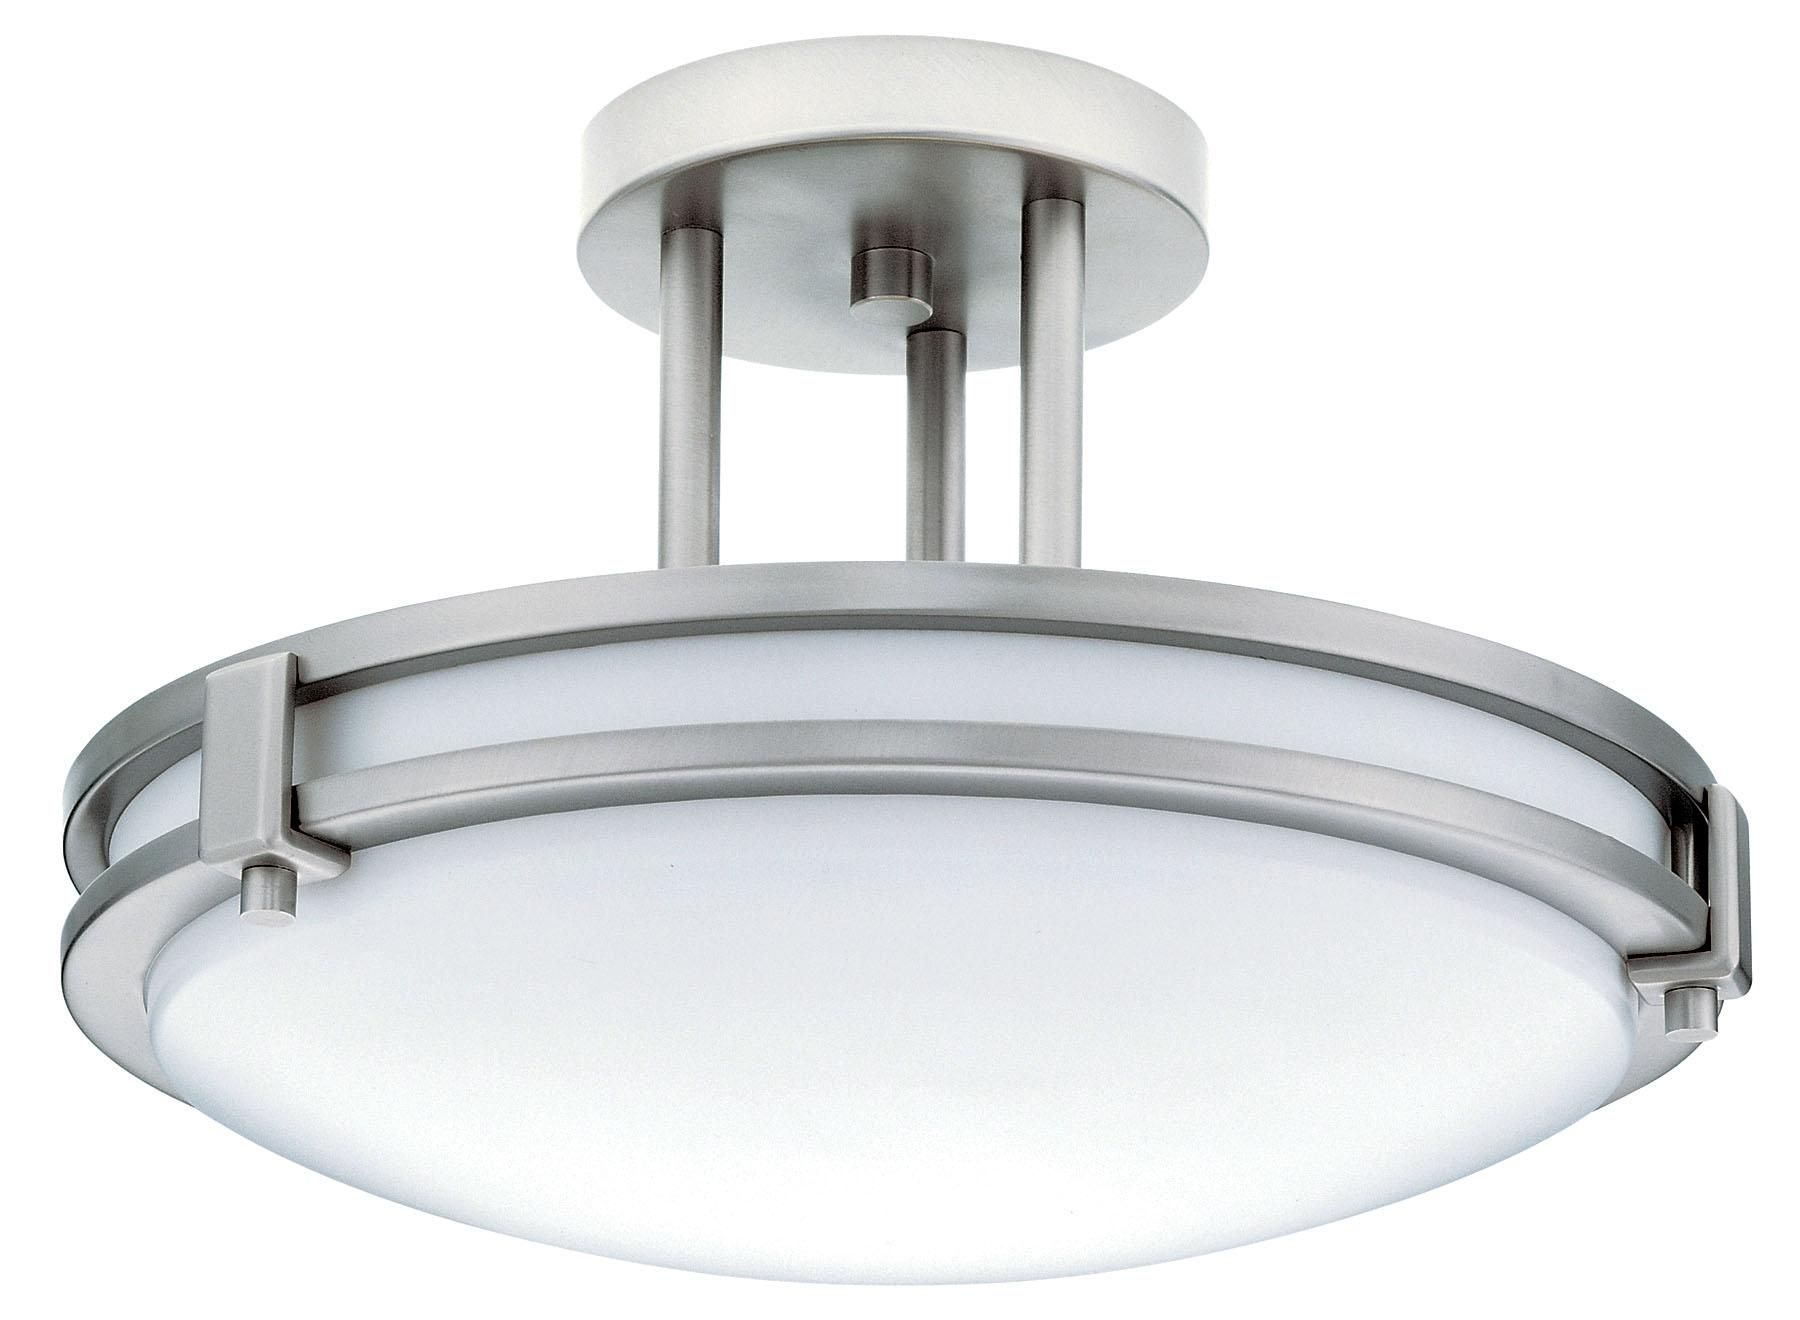 Brushed+Nickel+Bathroom+ceiling+lights | ... Light Bathroom Light Kitchen  Light Home Depot Brushed Nickel Bathroom